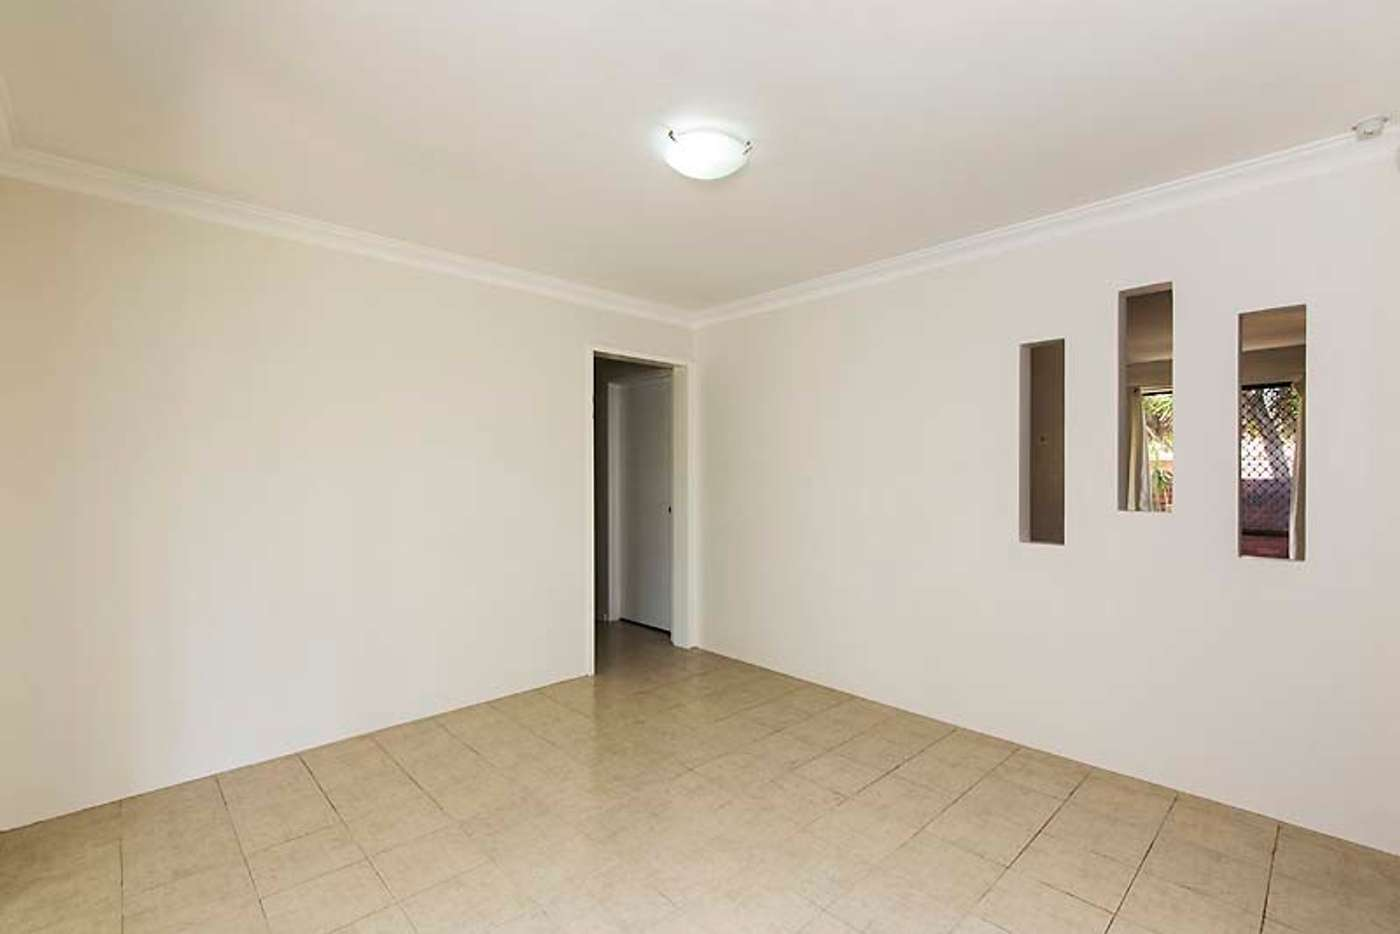 Seventh view of Homely house listing, 9 May Road, Eden Hill WA 6054